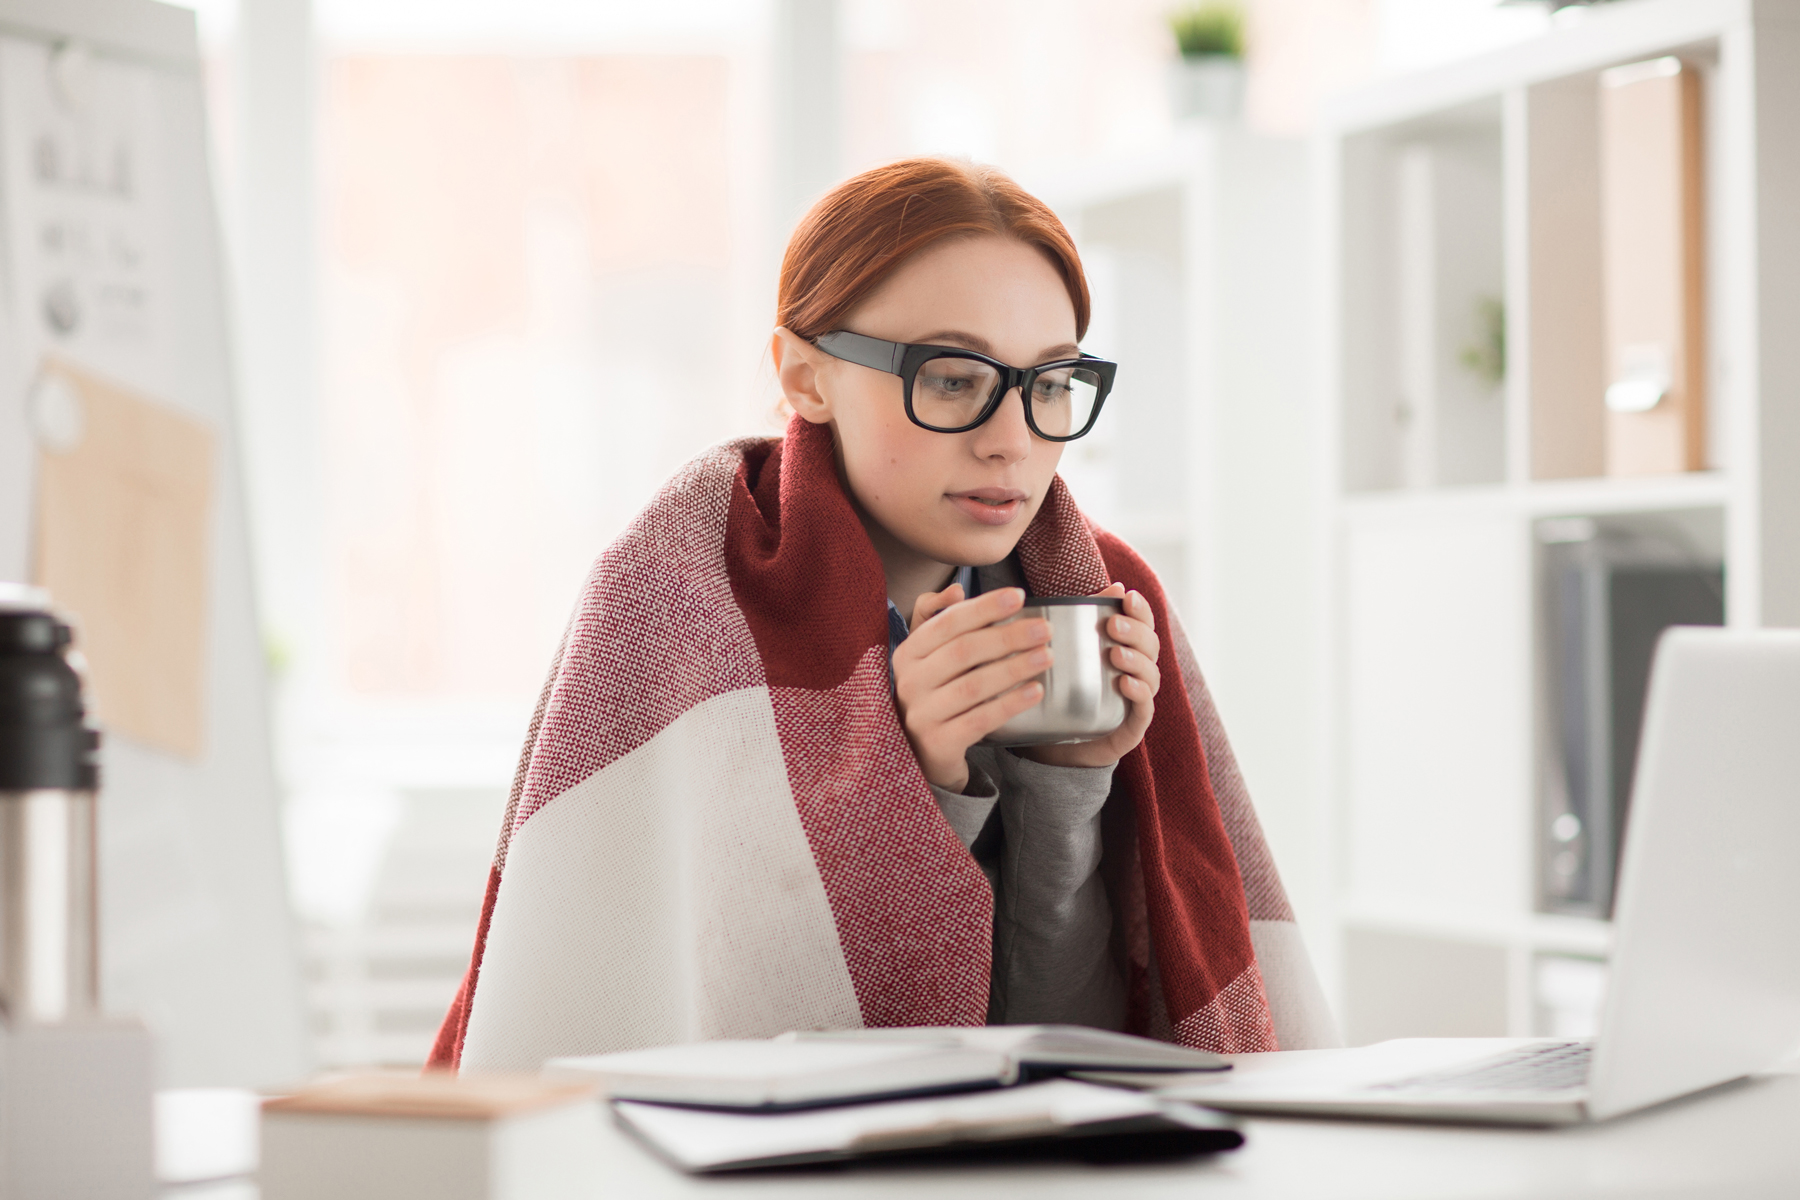 Best Warming Ideas For Cold Office 2020 USC study finds women are more productive at warmer temperatures